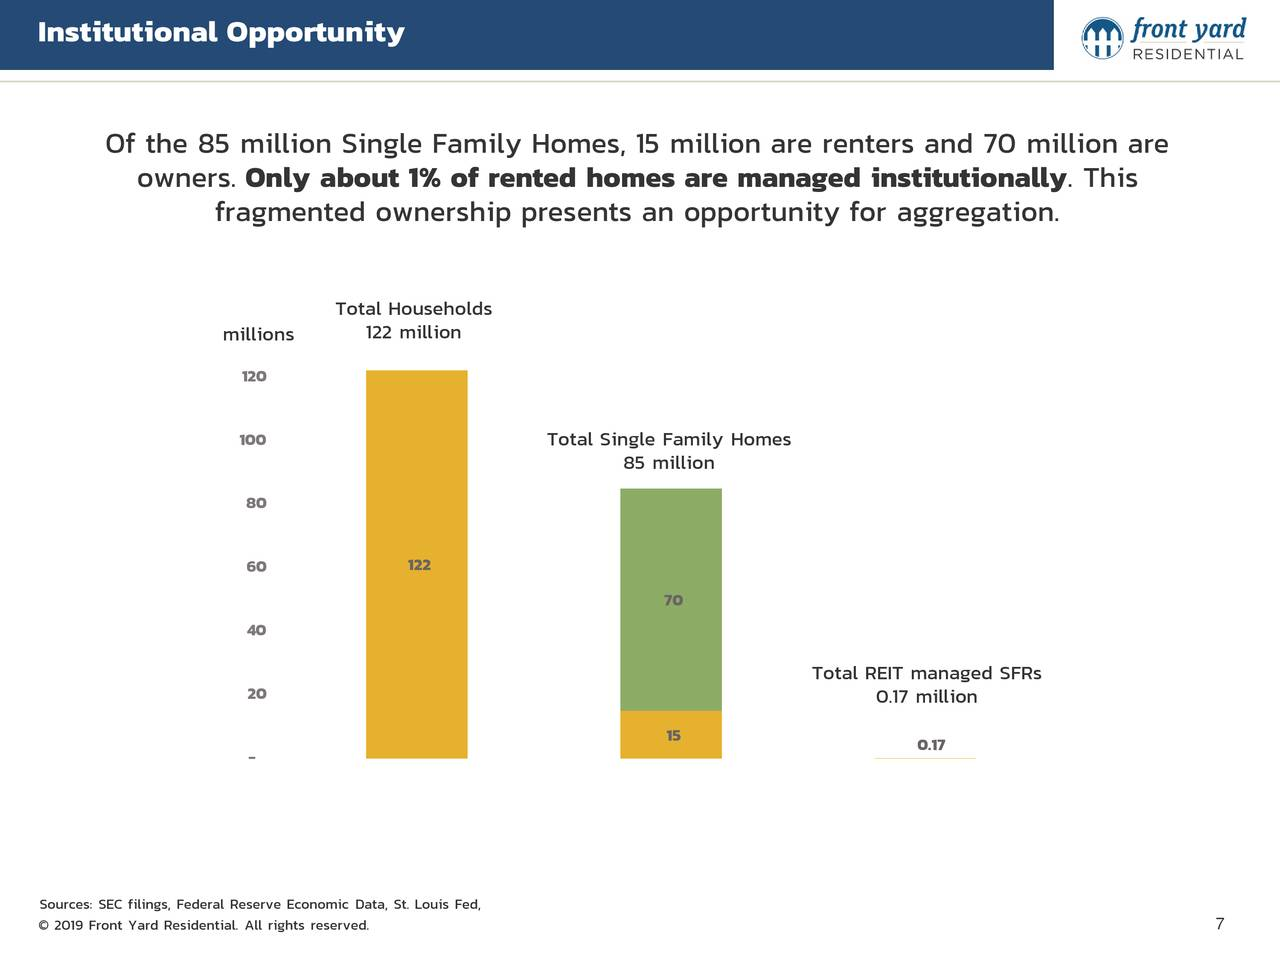 Of the 85 million Single Family Homes, 15 million are renters and 70 million are owners. Only about 1% of rented homes are managed institutionally. This fragmented ownership presents an opportunity for aggregation. Total Households millions 122 million 120 100 Total Single Family Homes 85 million 80 60 122 70 40 Total REIT managed SFRs 20 0.17 million 15 0.17 - Sources: SEC filings, Federal Reserve Economic Data, St. Louis Fed, © 2019 Front Yard Residential. All rights reserved. 7